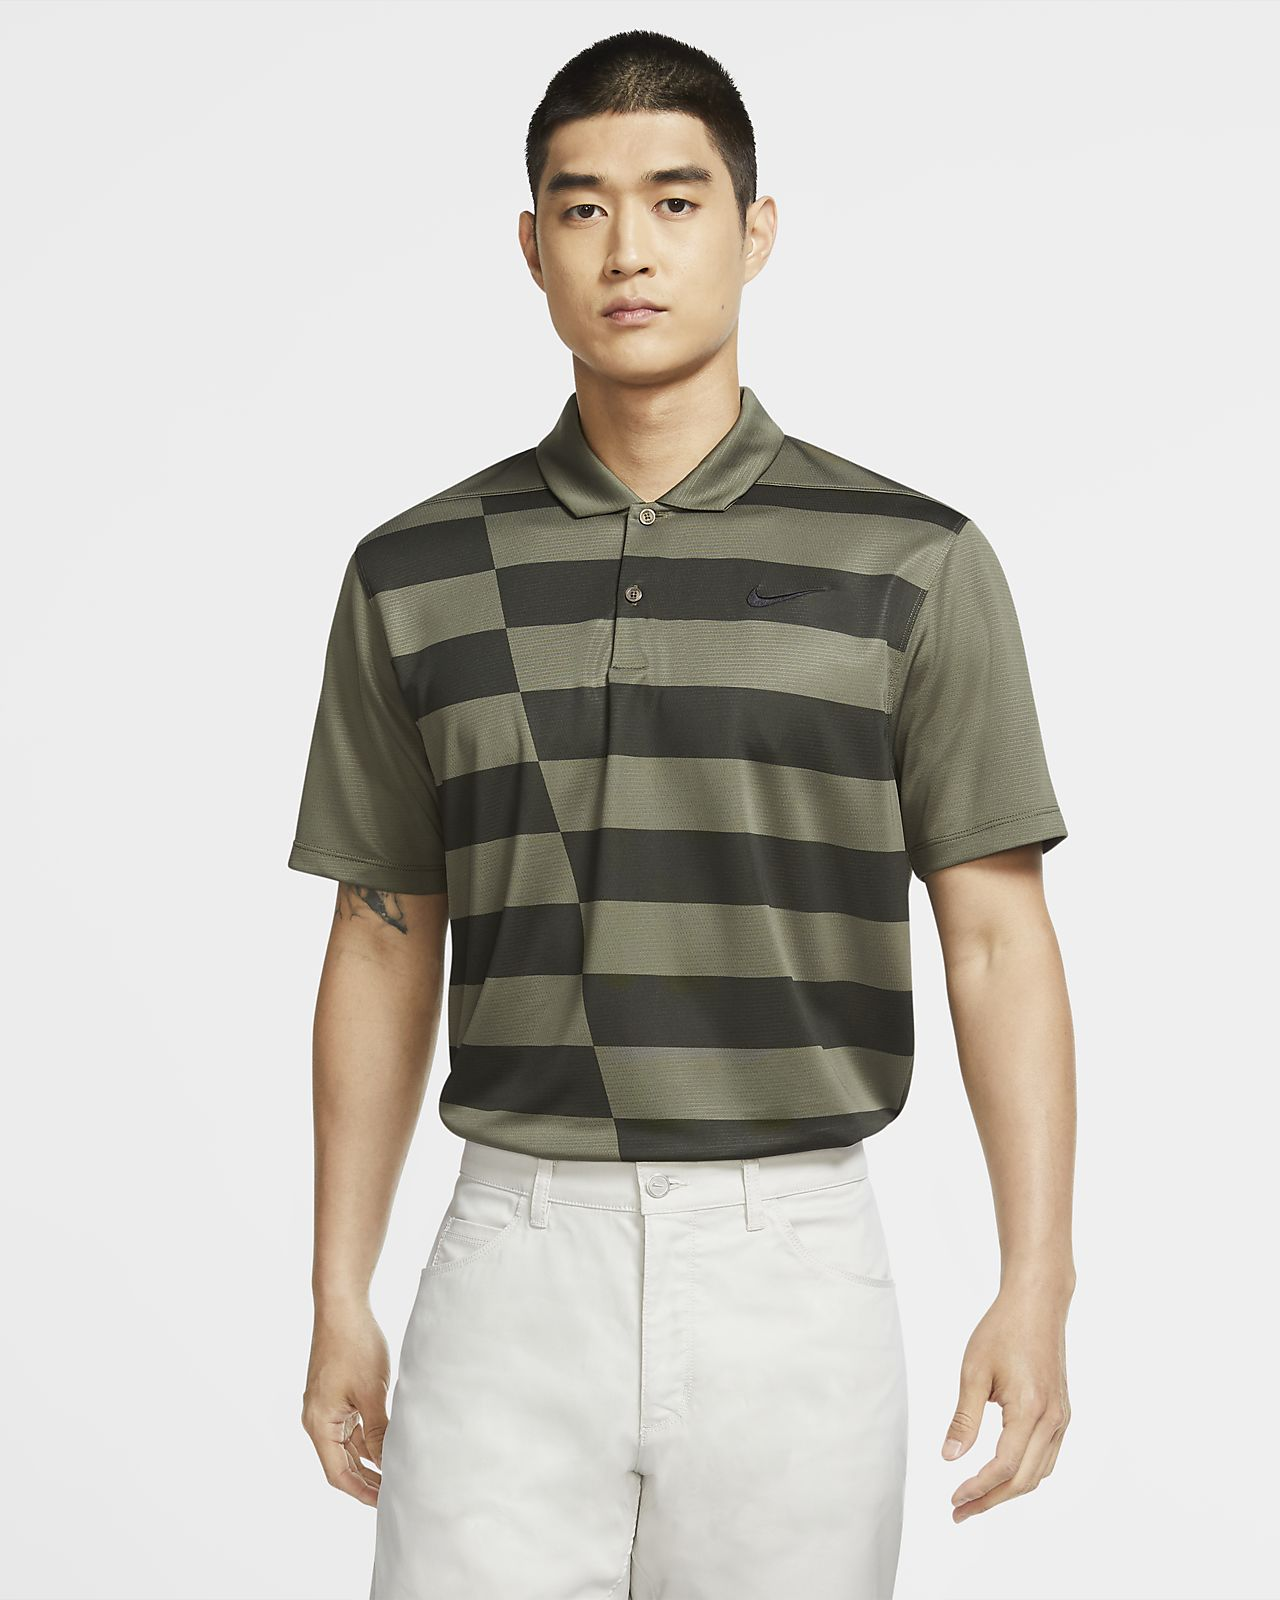 Nike Dri-FIT Men's Graphic Golf Polo